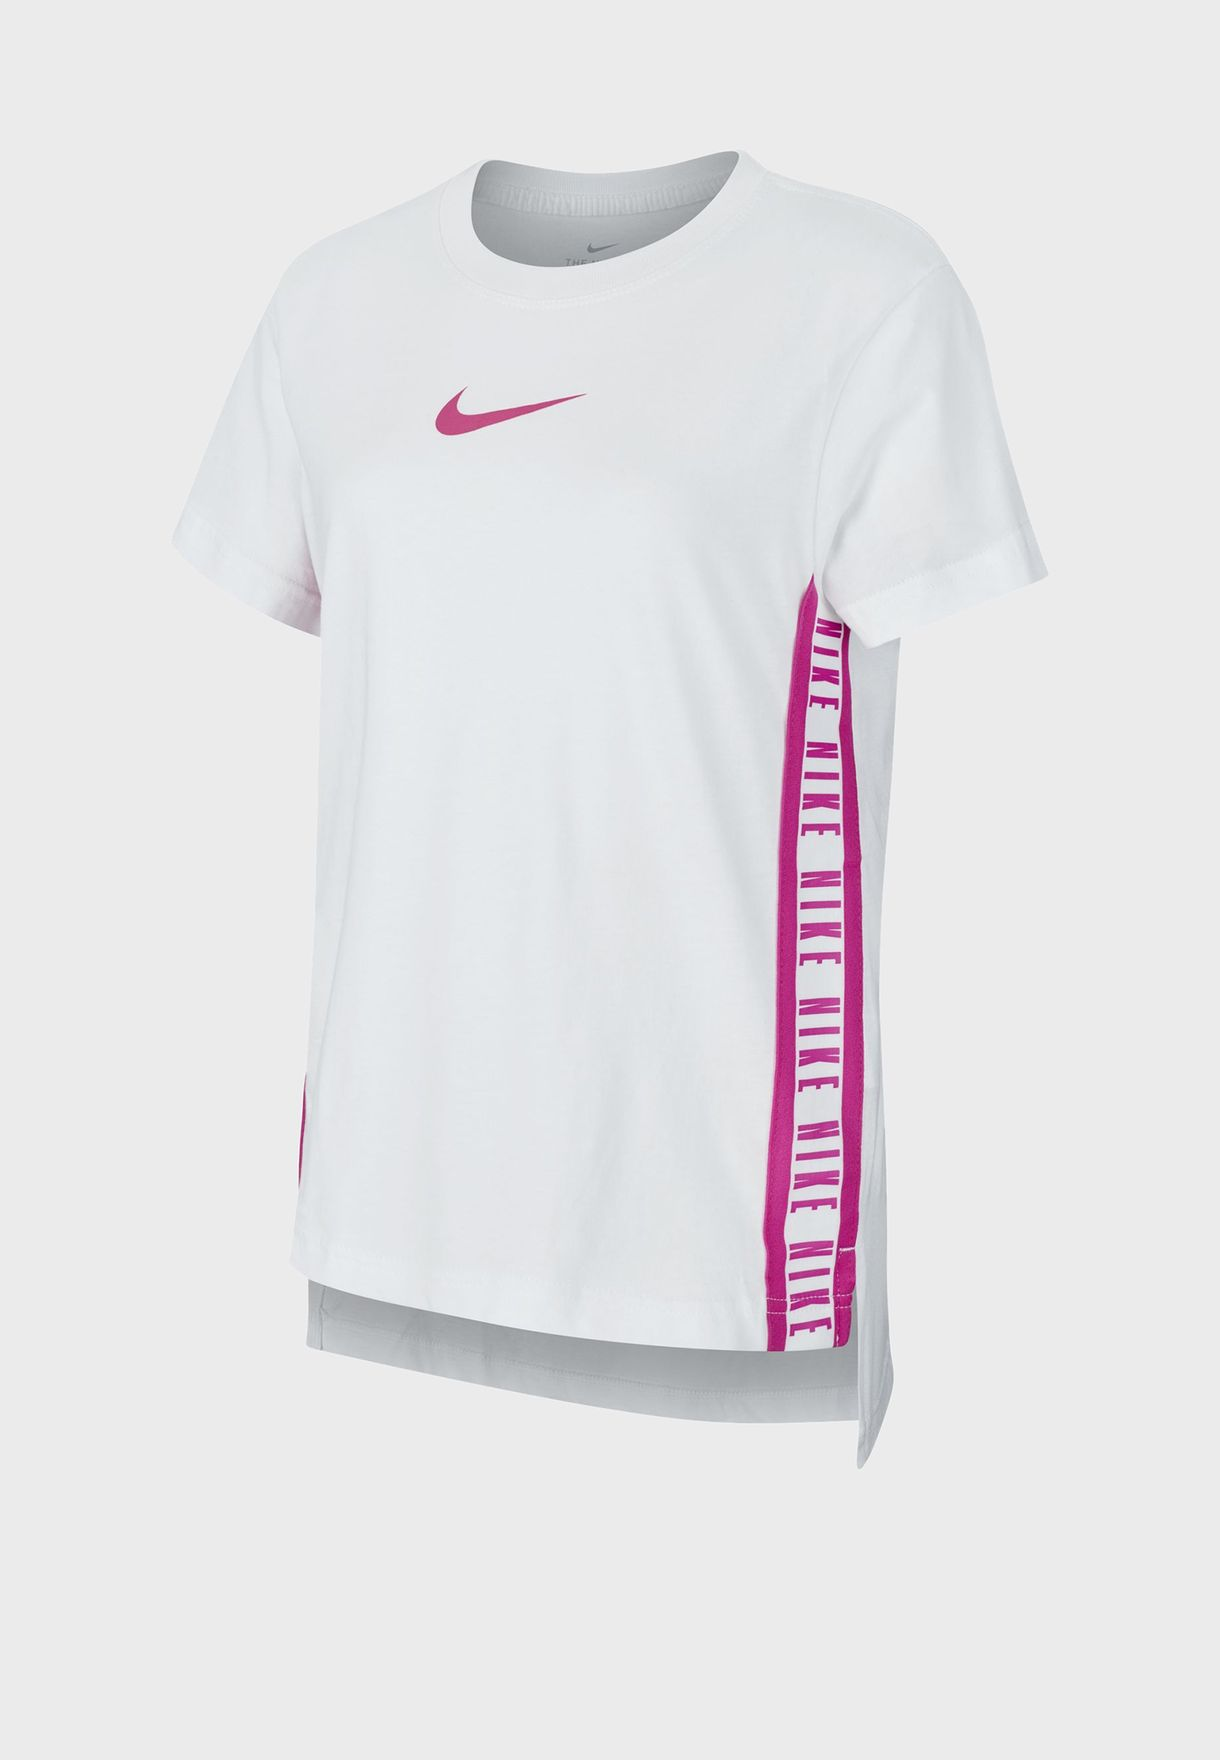 Youth NSW T-Shirt